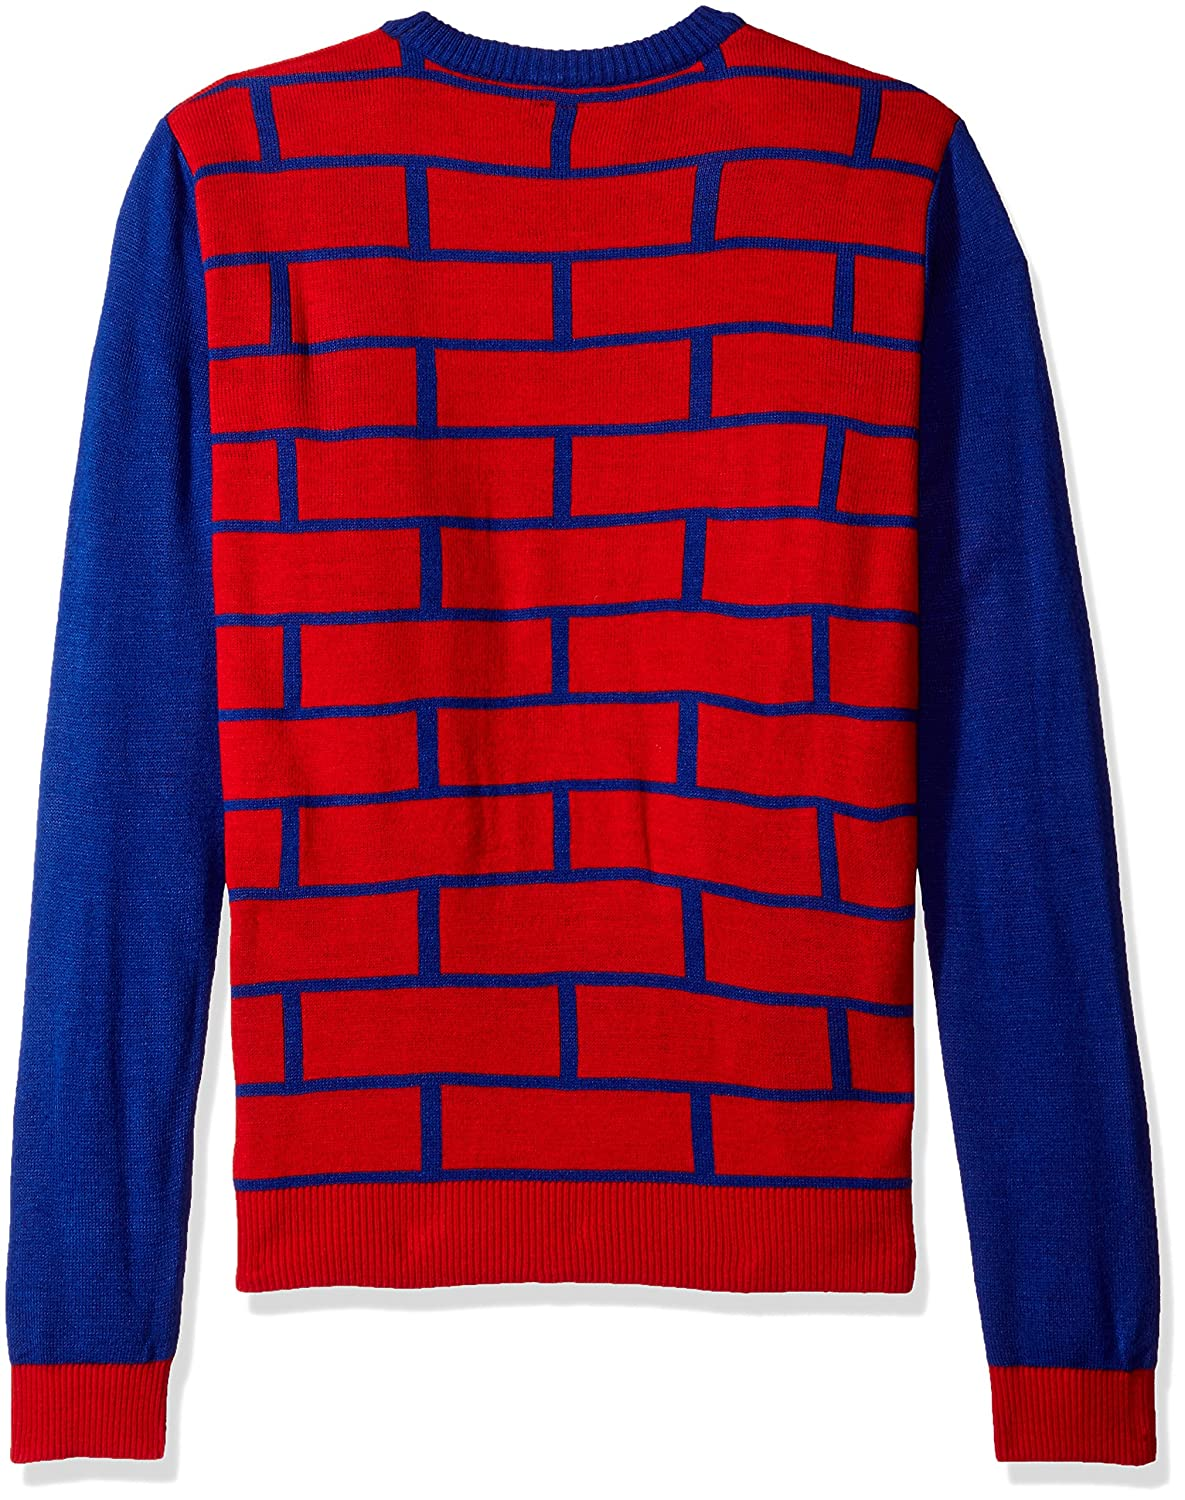 Amazon.com : New York Giants Ugly 3D Sweater - Mens Medium : Sports ...